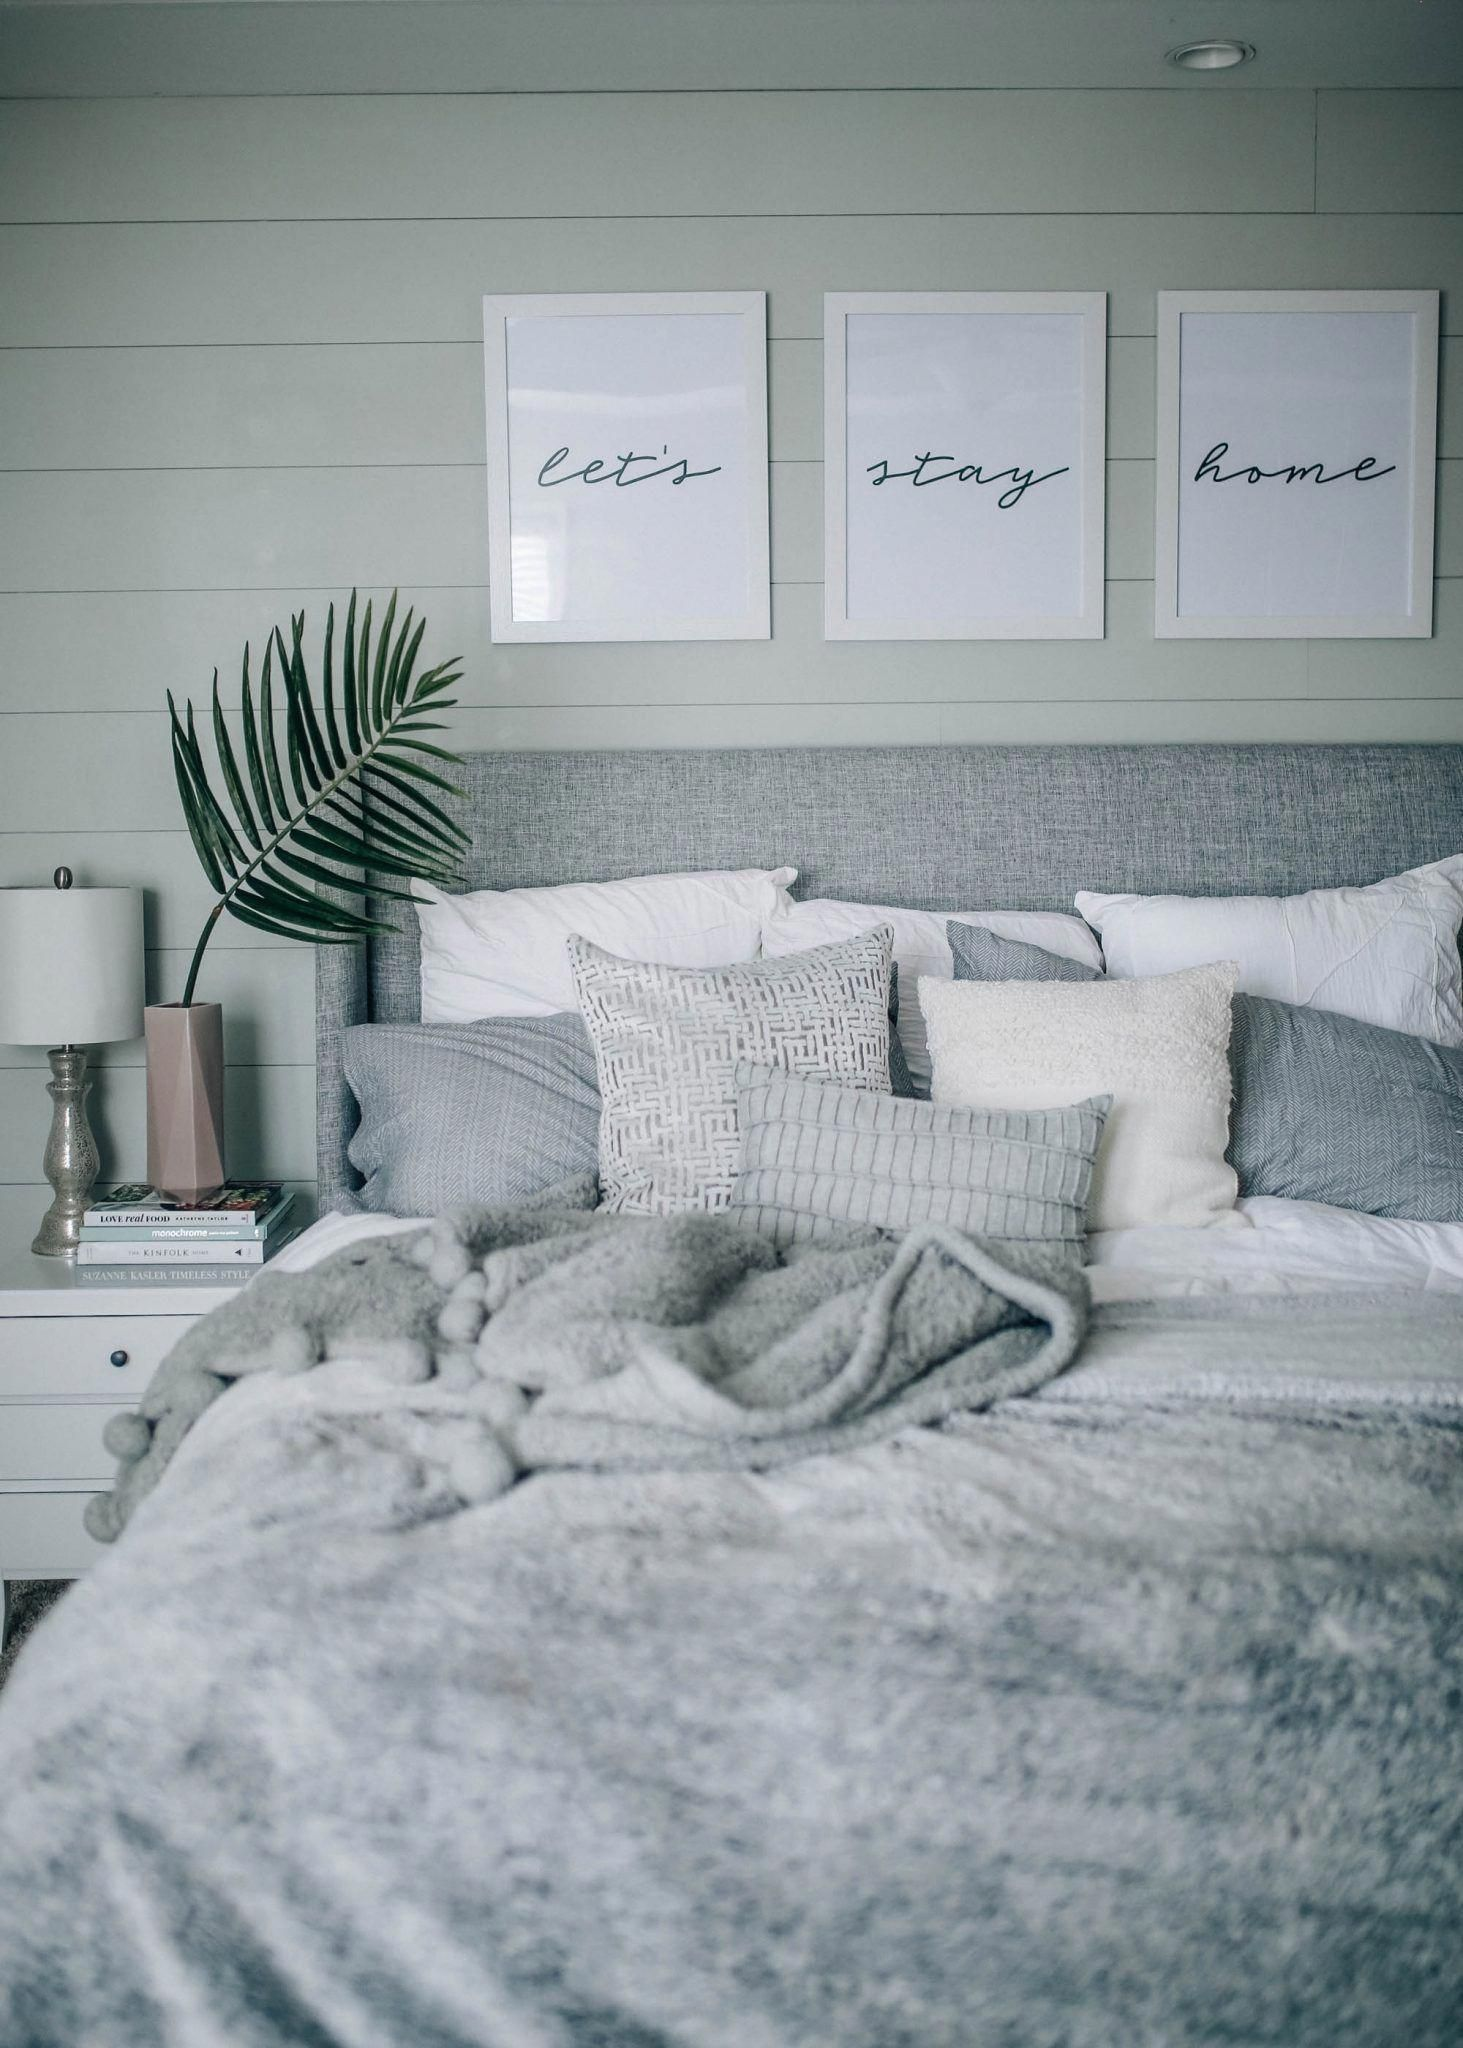 Modern Bedroom Ideas Interior Decorating Accessories Bedroom Decor And Accessories 20190226 Apartment Bedroom Design White Bedroom Decor Shiplap Bedroom